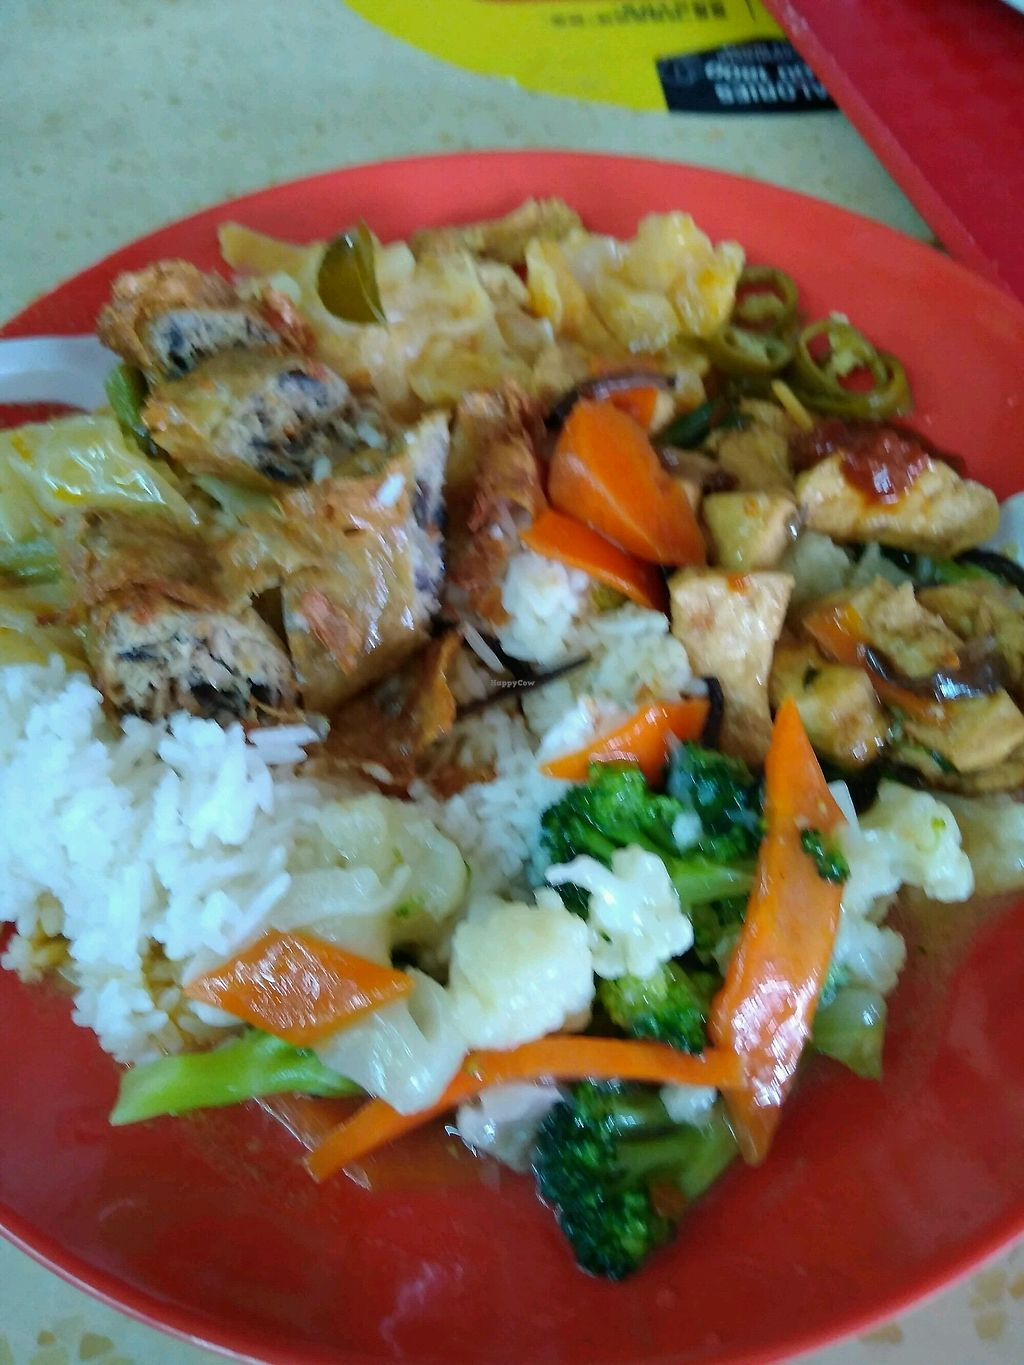 "Photo of Rong Xiang Vegetarian Food  by <a href=""/members/profile/RichardLee"">RichardLee</a> <br/>Mixed vege rice <br/> March 15, 2018  - <a href='/contact/abuse/image/94266/370811'>Report</a>"